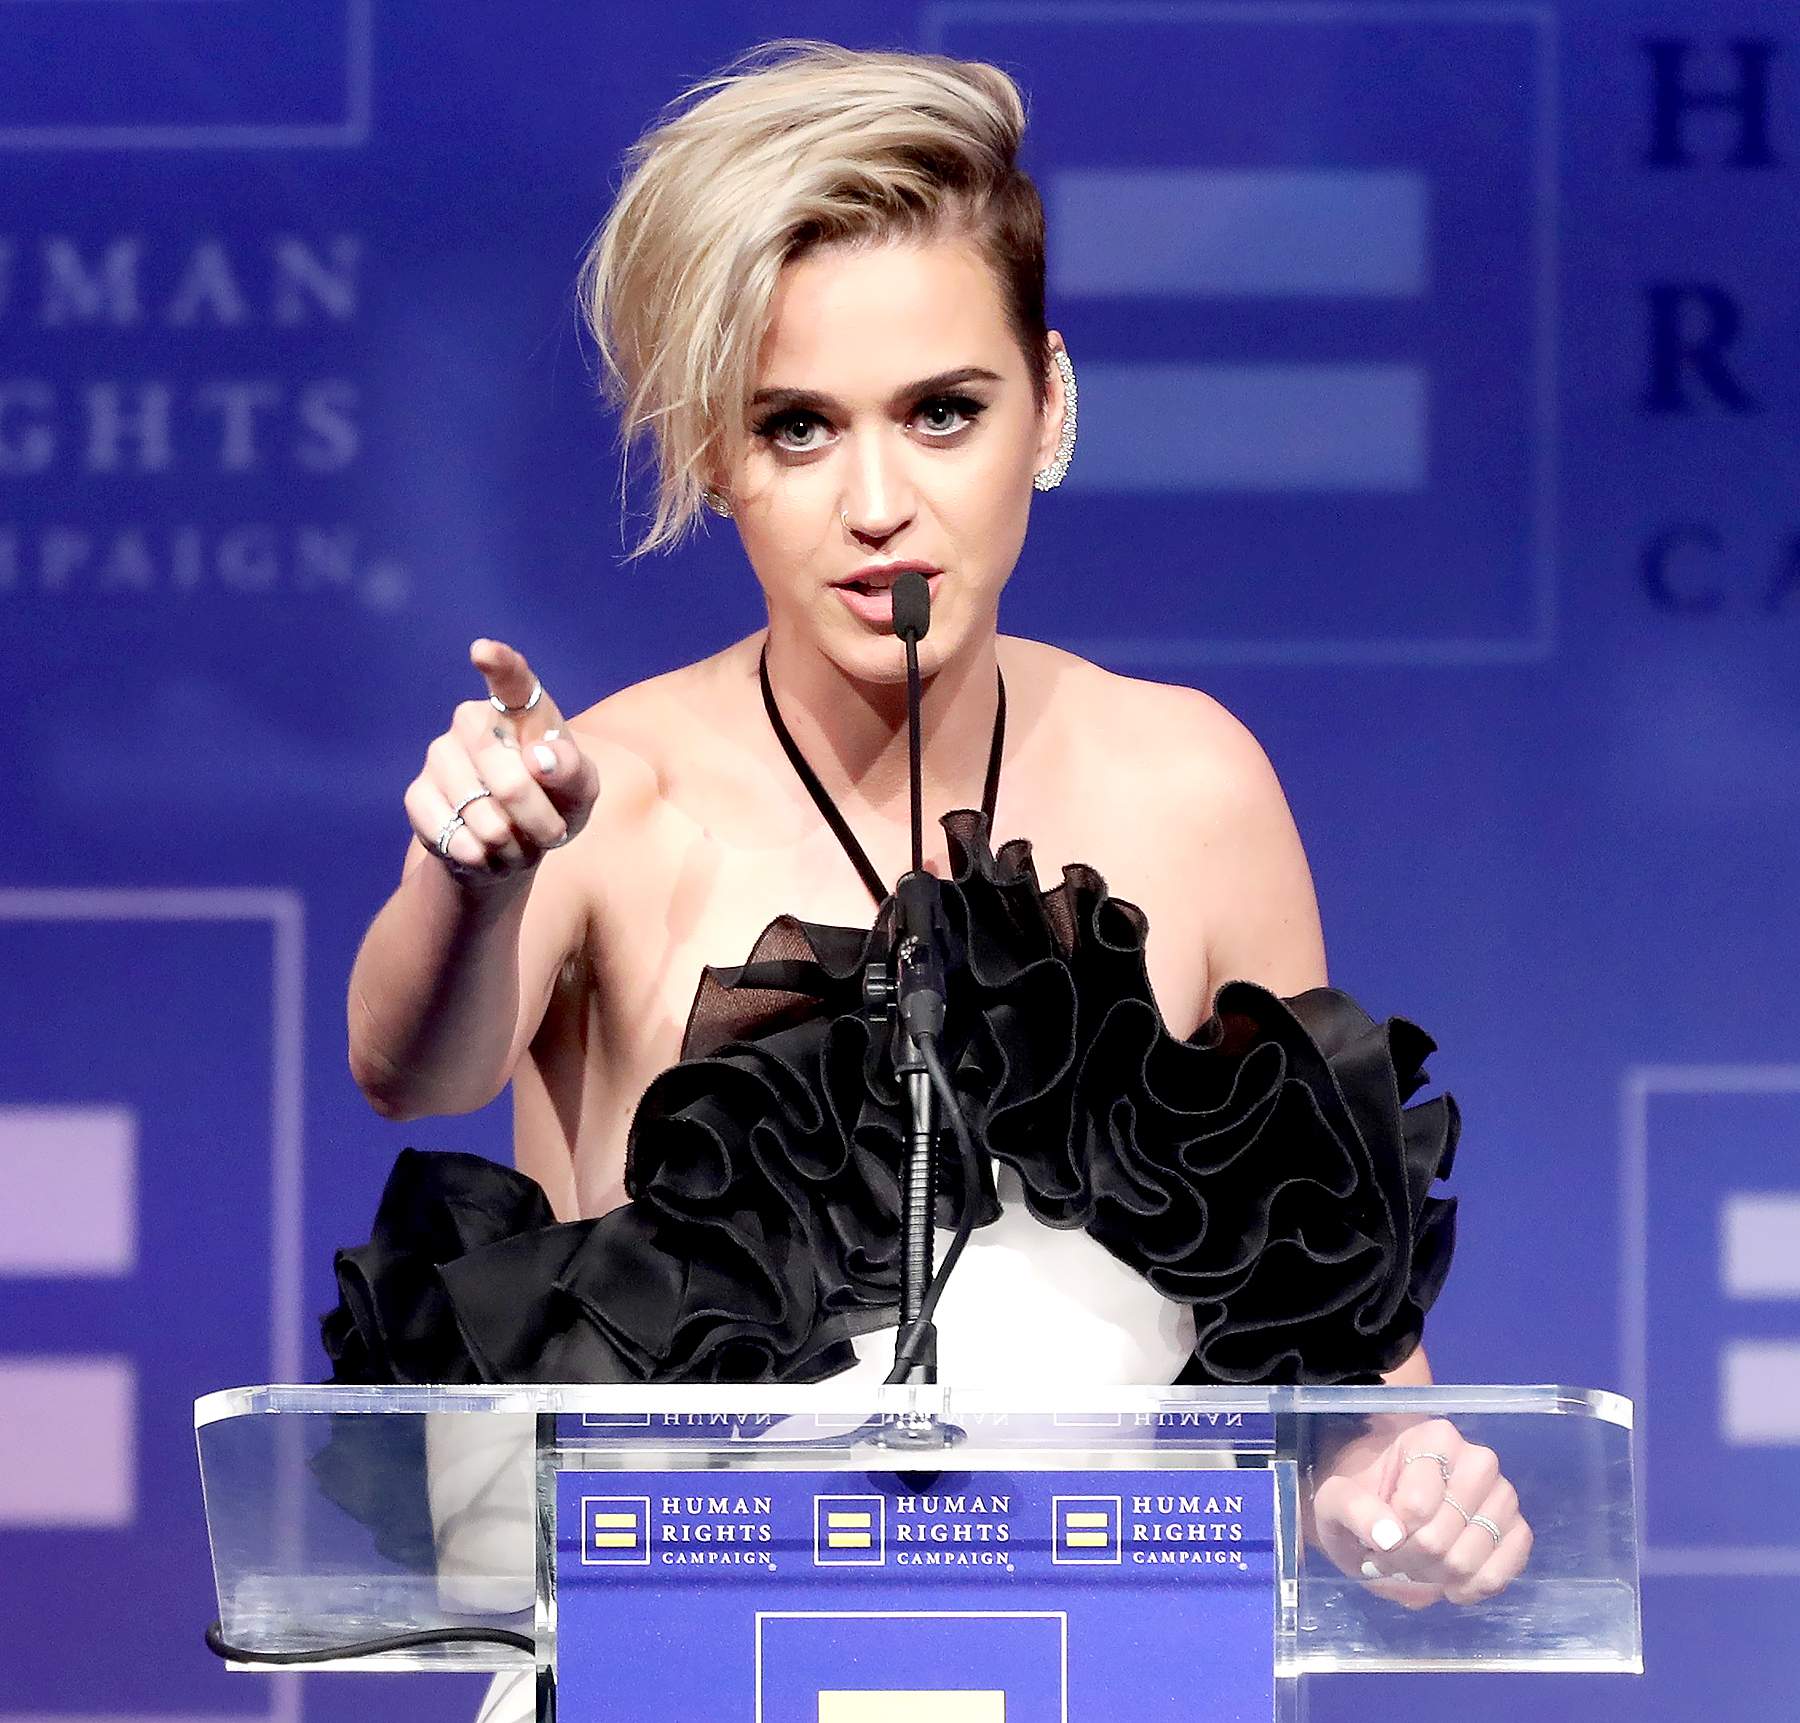 Katy Perry accepts the HRC National Equality Award onstage at The Human Rights Campaign 2017 Los Angeles Gala Dinner at JW Marriott Los Angeles at L.A. LIVE on March 18, 2017 in Los Angeles, California.